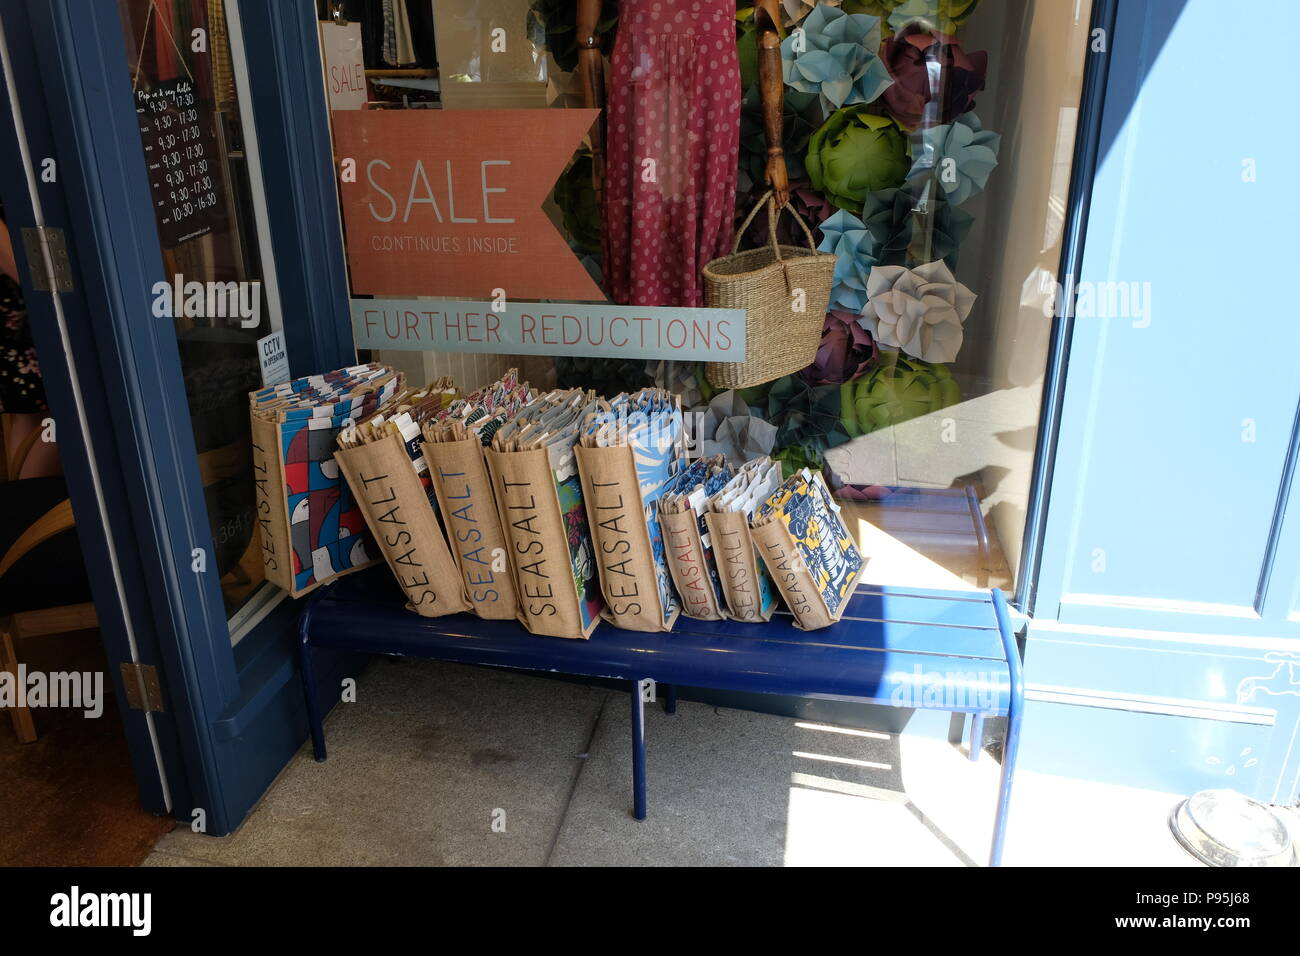 Sisal Seasalt branded shopping bags are displayed outside a Sesalt UK branch in Sidmoth, East Devon, UK - Stock Image